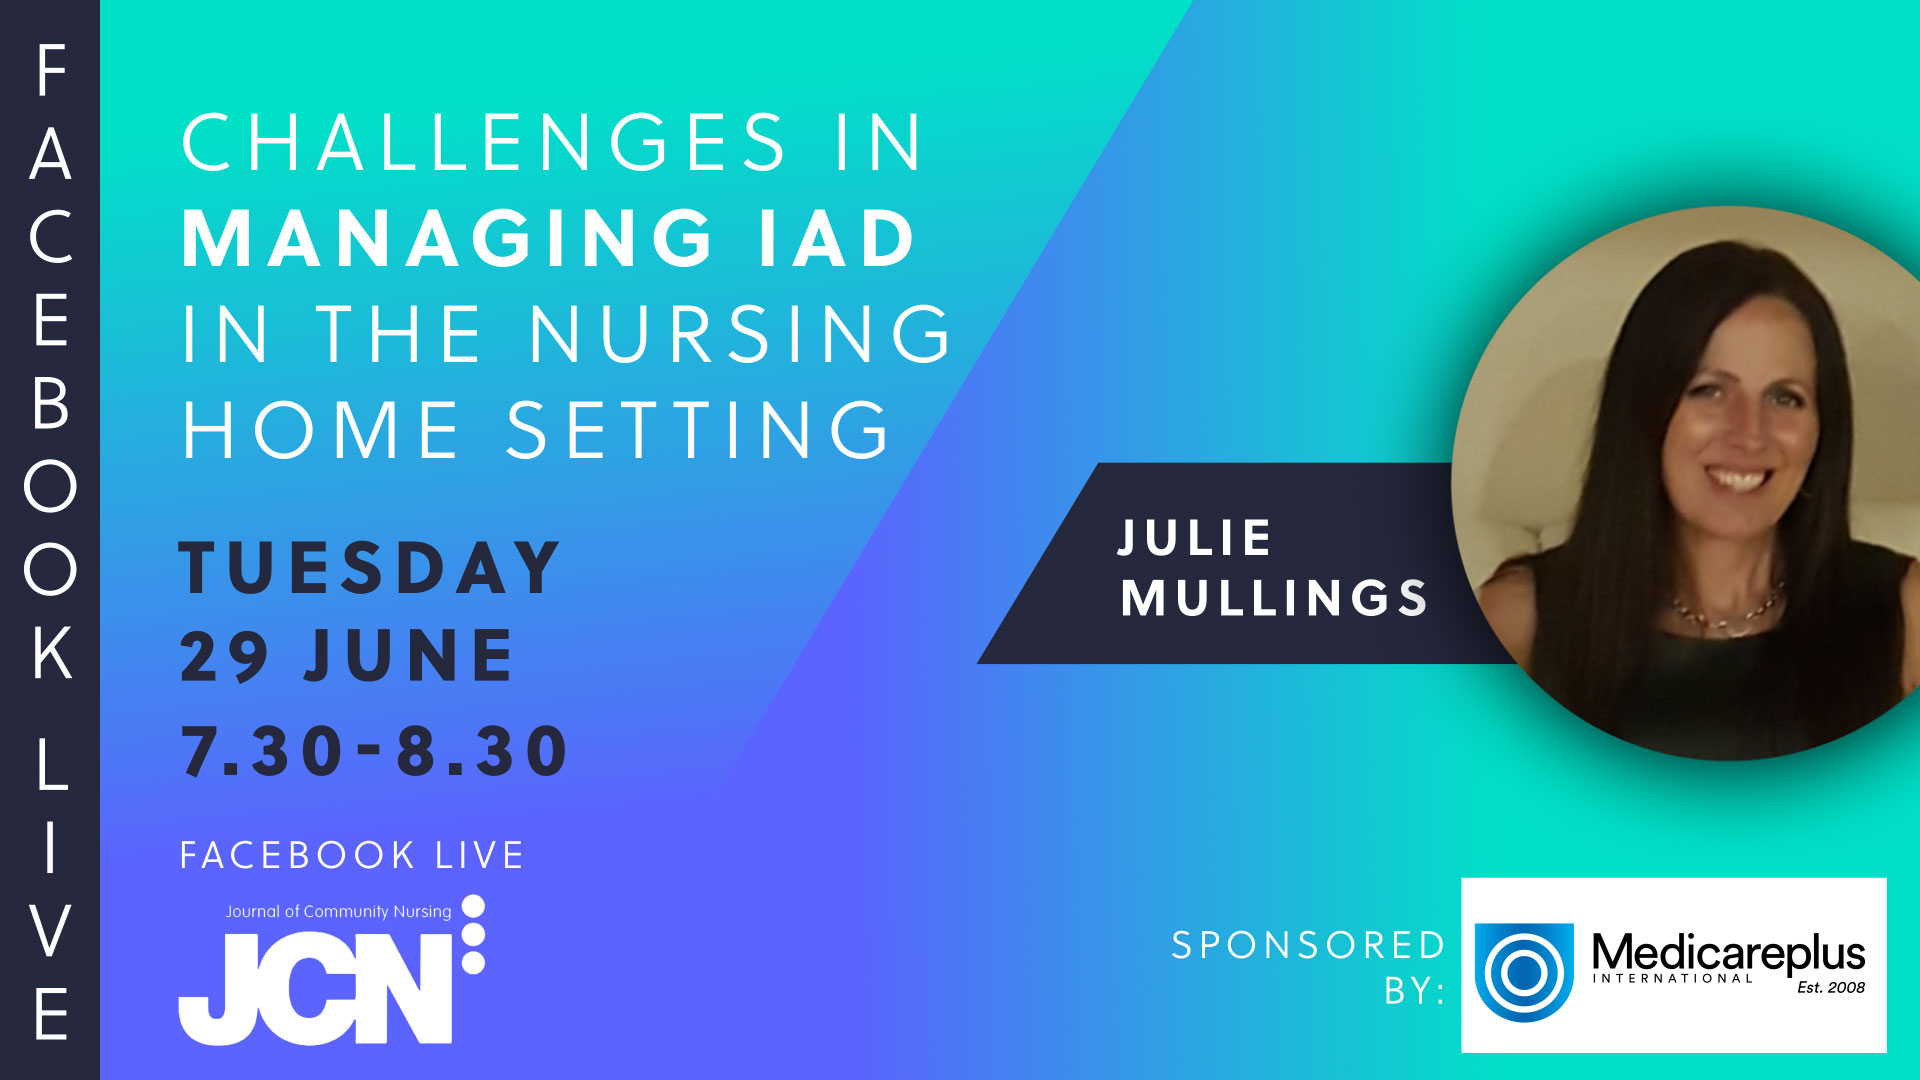 Facebook Live: Challenges in managing IAD in the nursing home setting